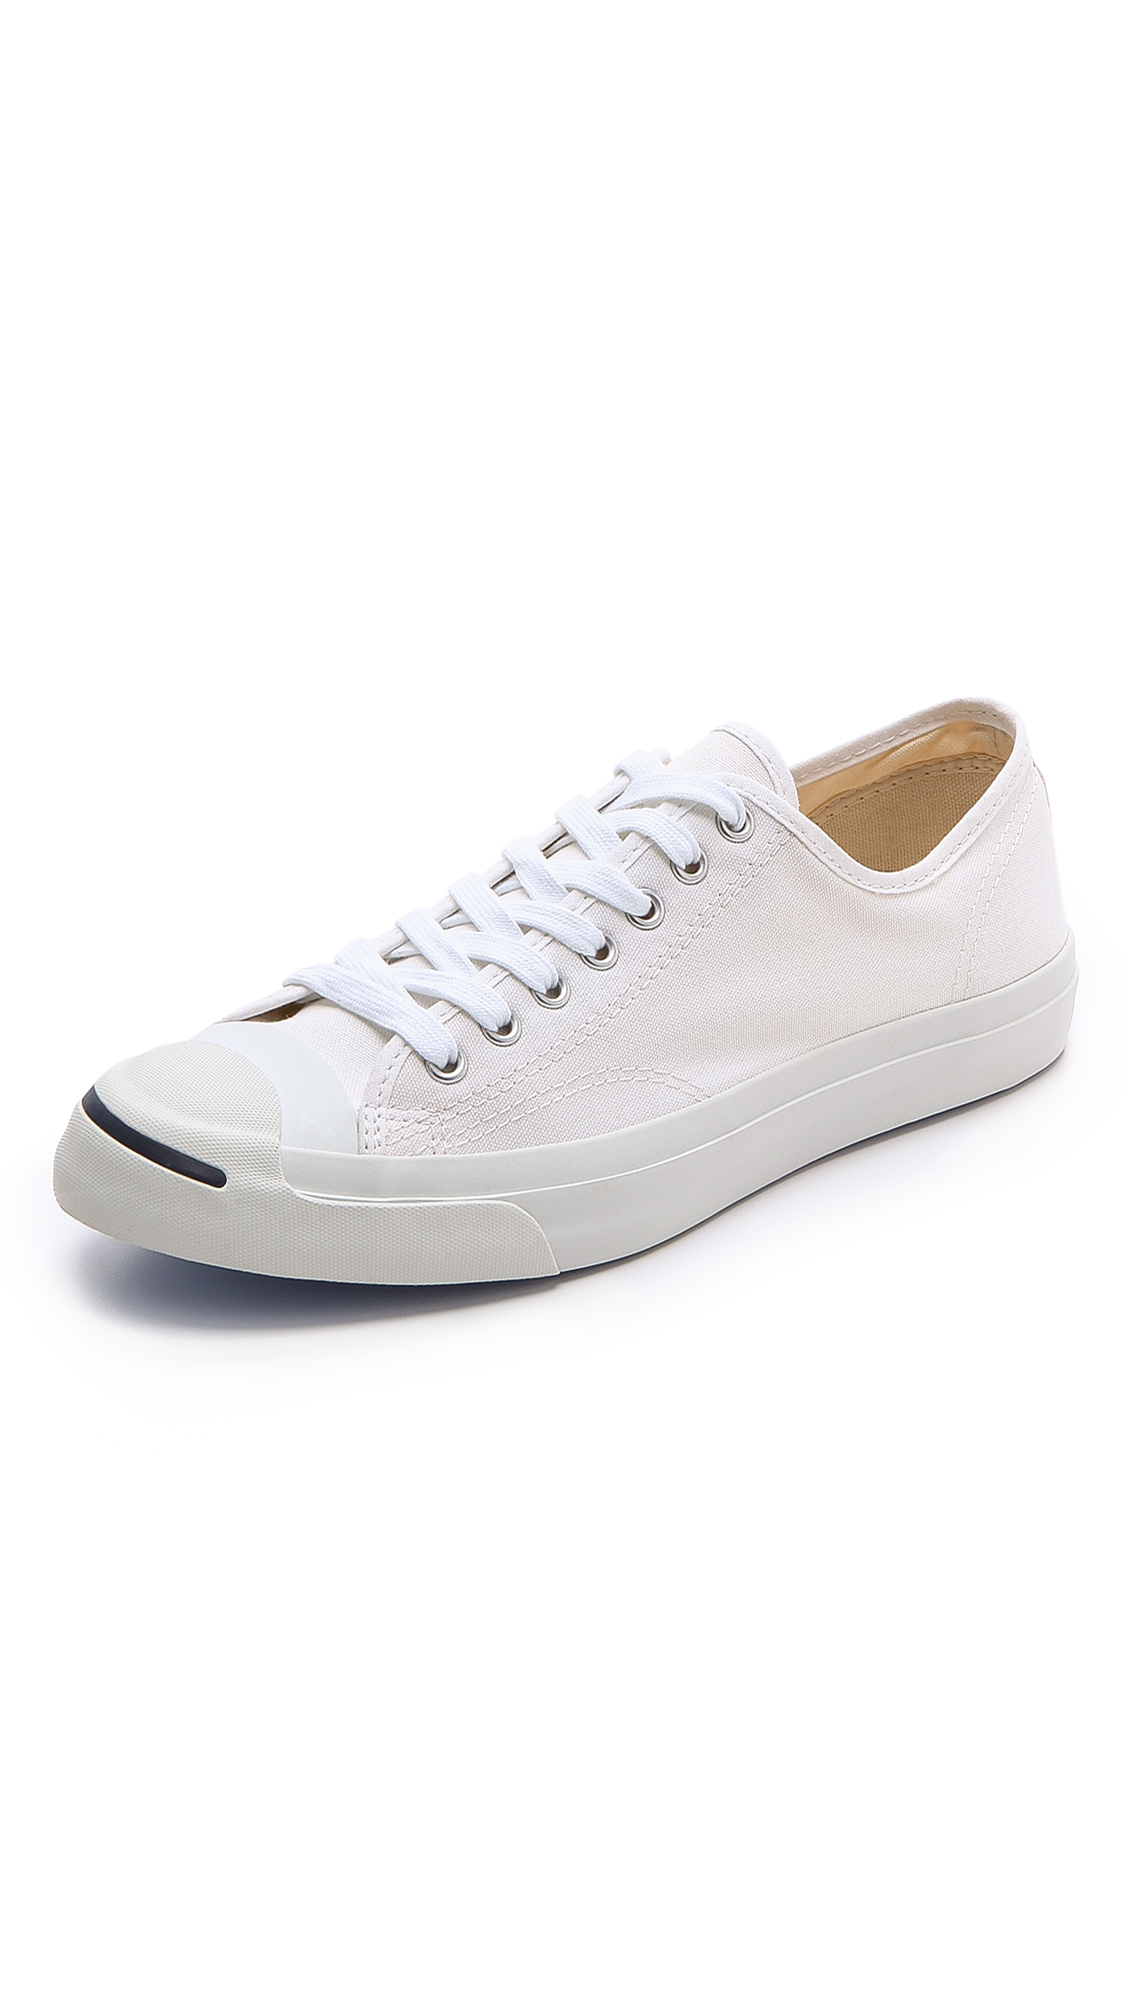 b0182ece6453 Converse Jack Purcell Signature Canvas Sneakers In White